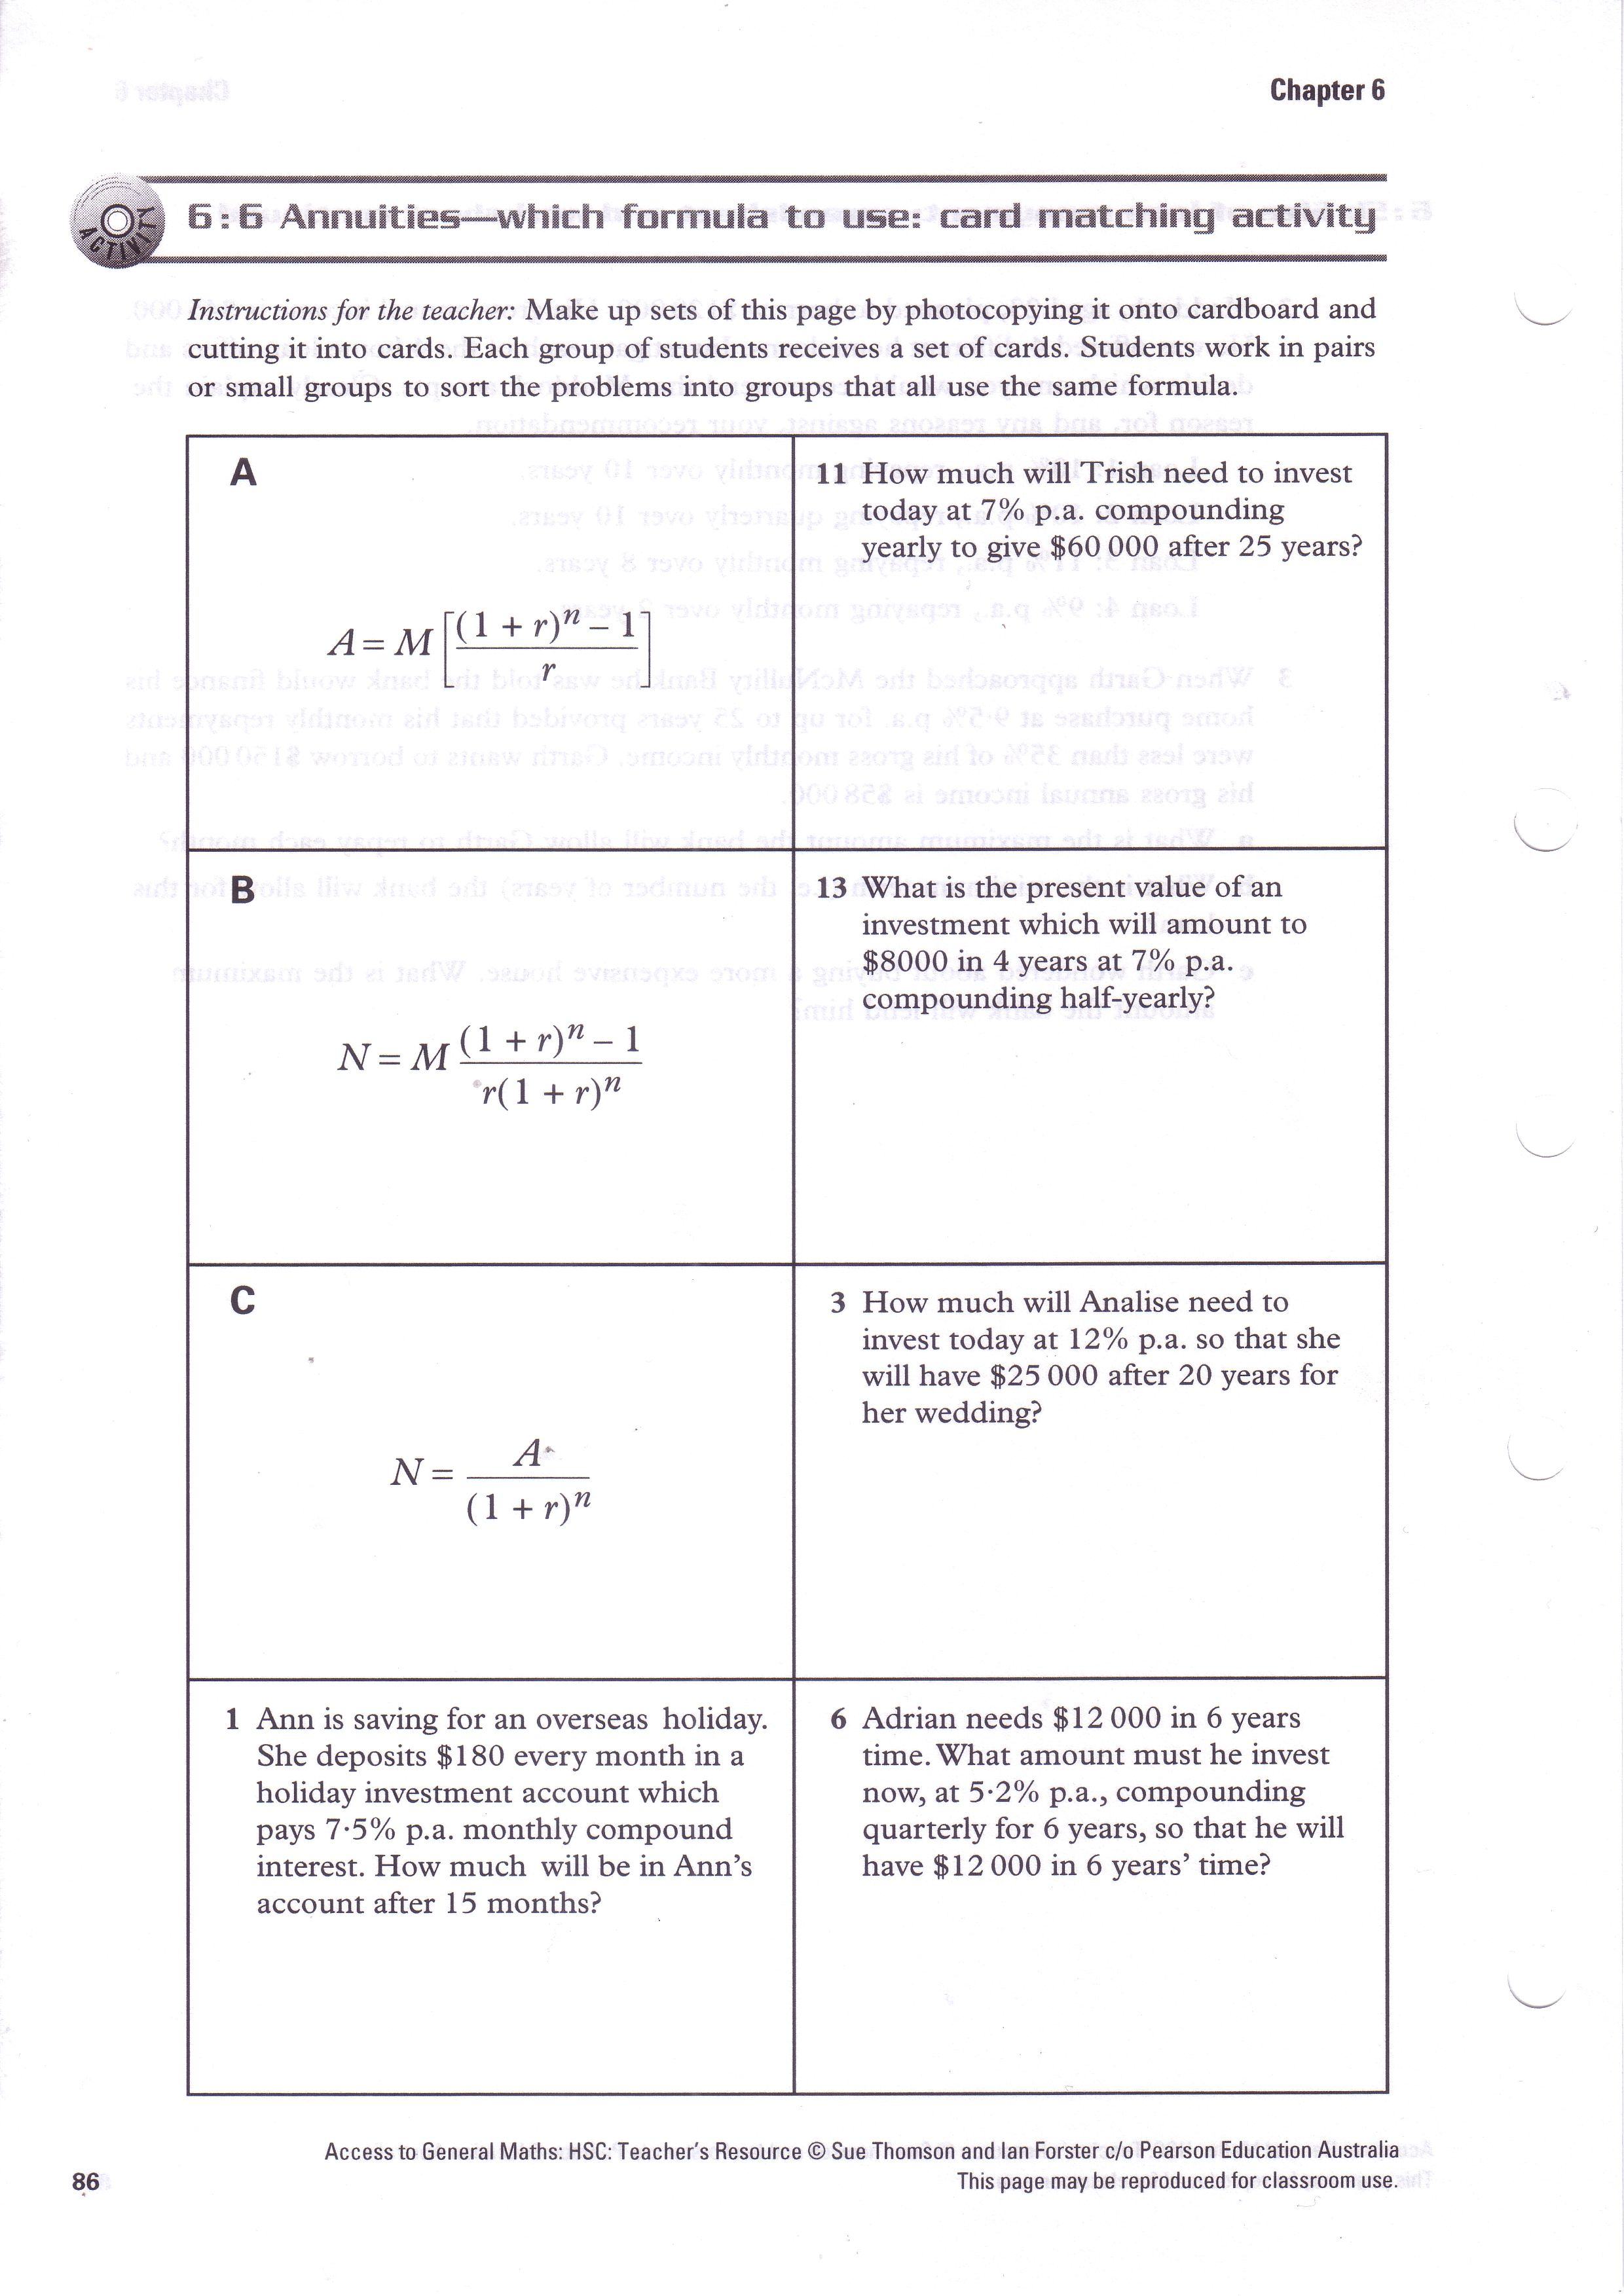 Culeymaths Year 12 General Mathematics